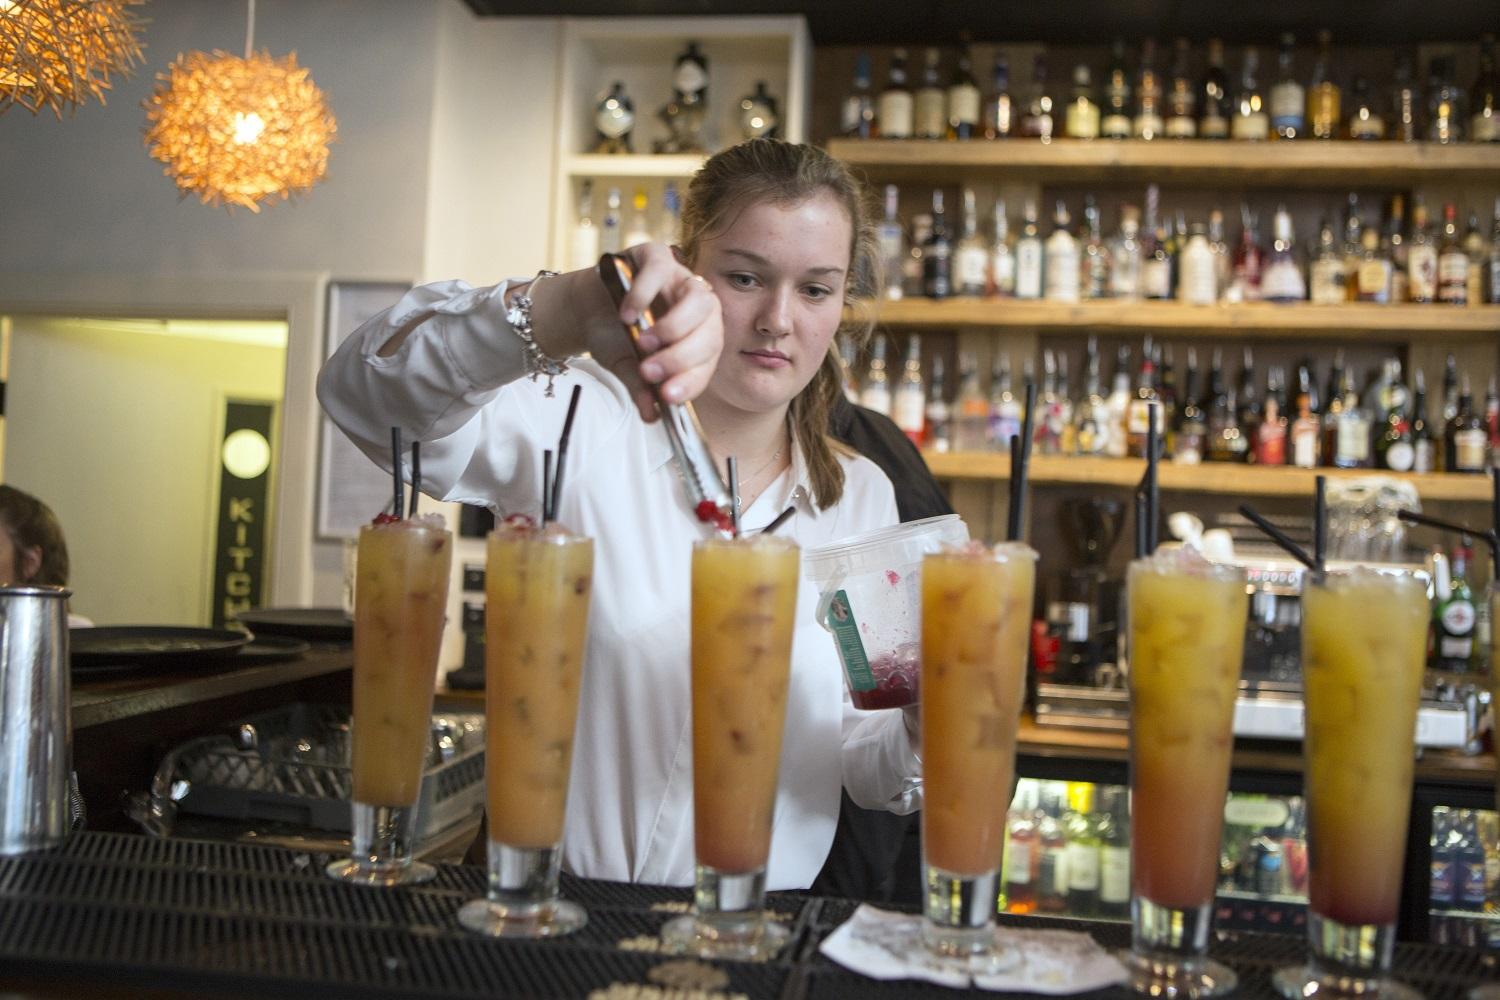 Charleston pupil Kirsty Hay preparing a mocktail at the event hosted in Inverness' The White House